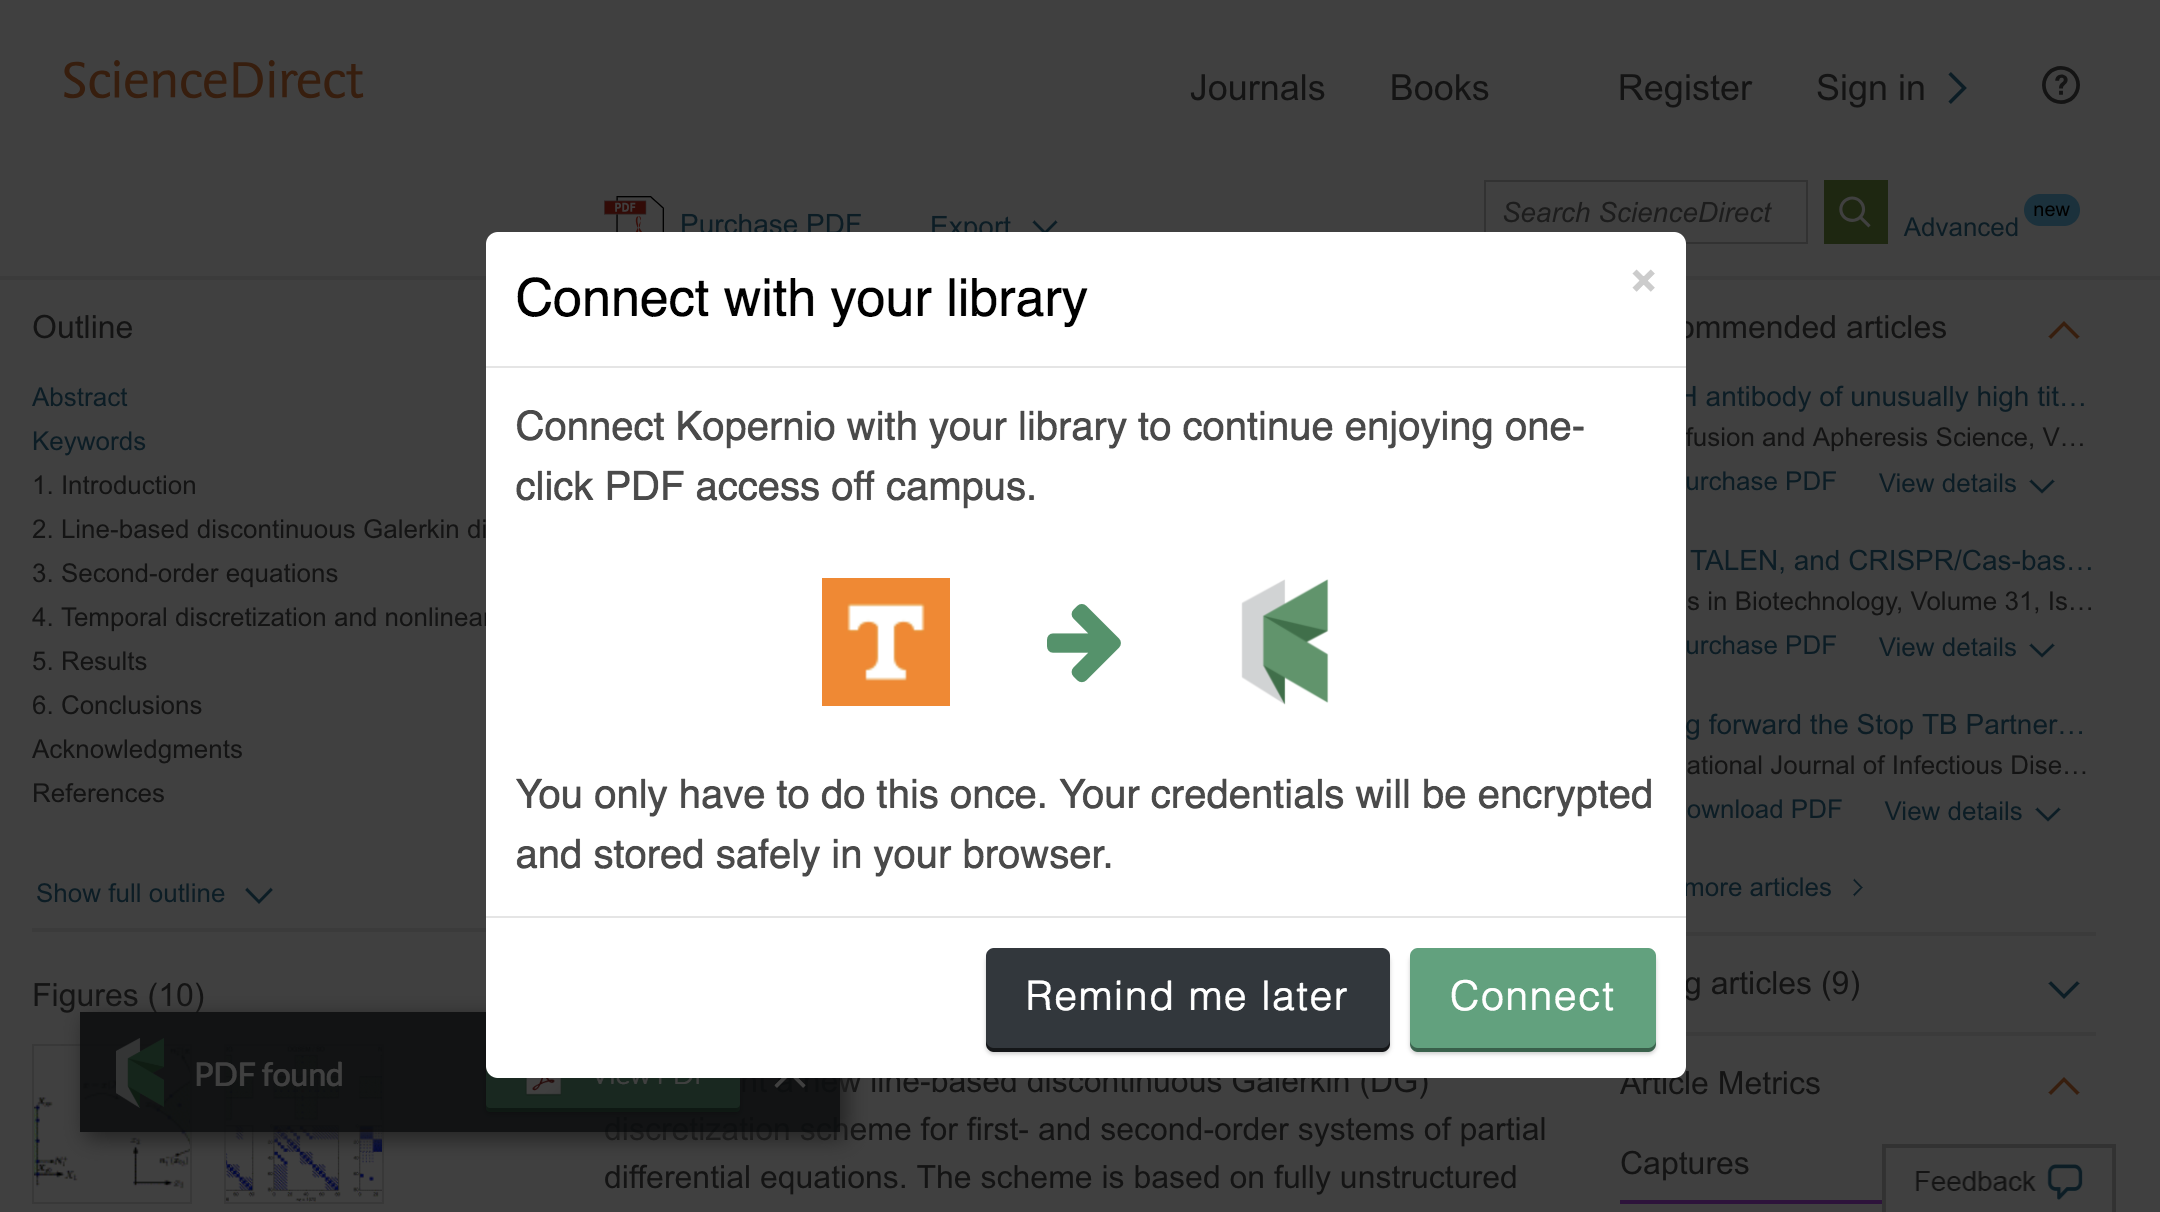 Connect to library prompt for off-campus access to University of Tennessee at Knoxville e-resources.